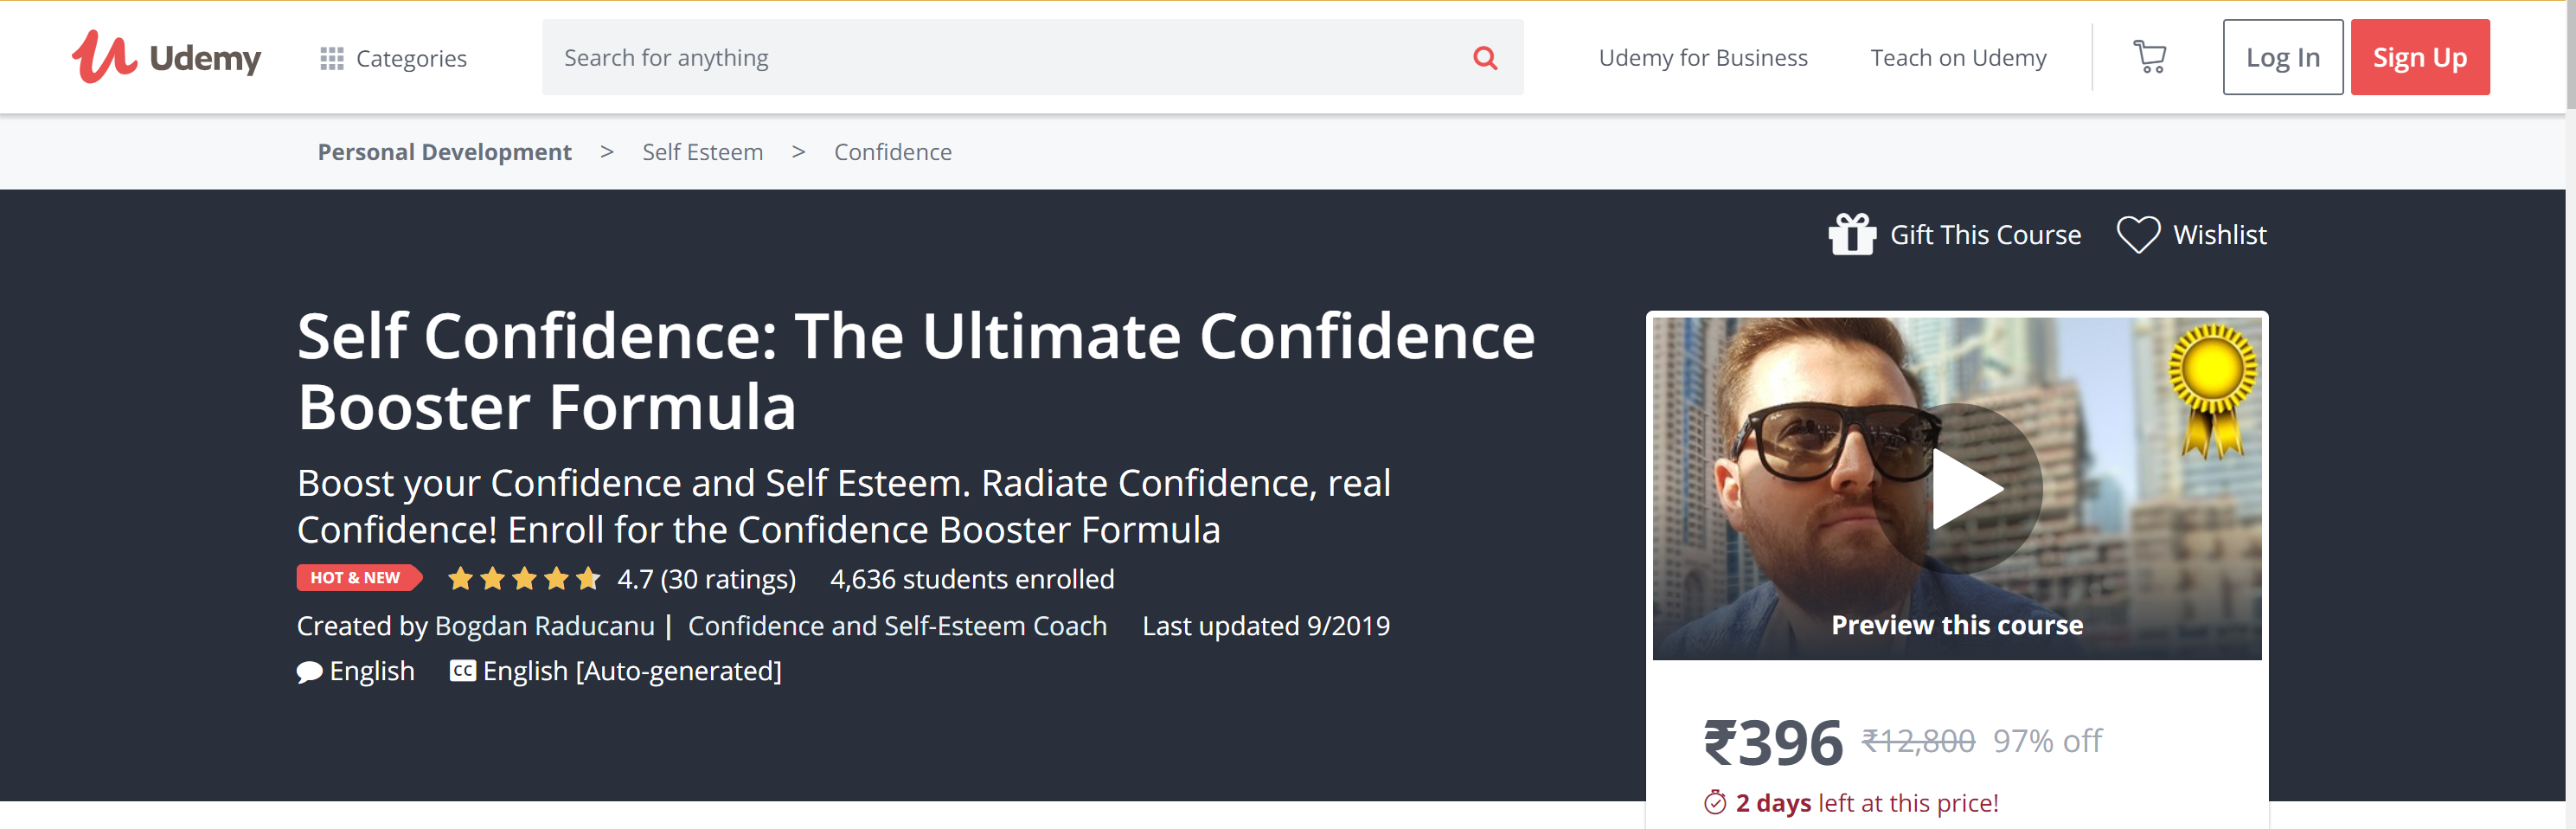 Best self confidence courses online